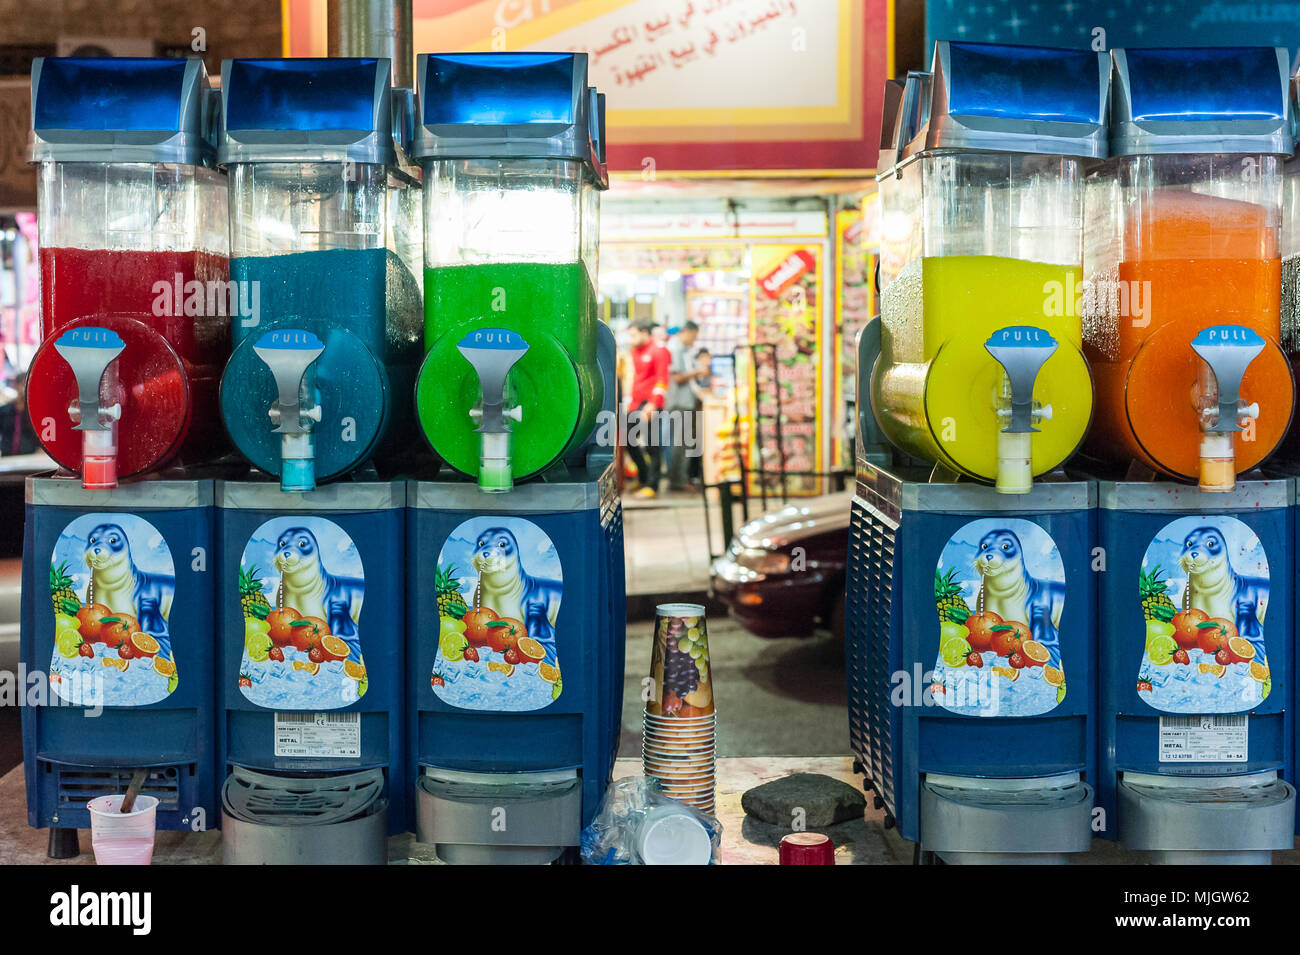 Fruit juice machines in Aqaba,al-ʻAqabah, a Jordanian coastal city situated at the northeastern tip of the Red Sea. - Stock Image